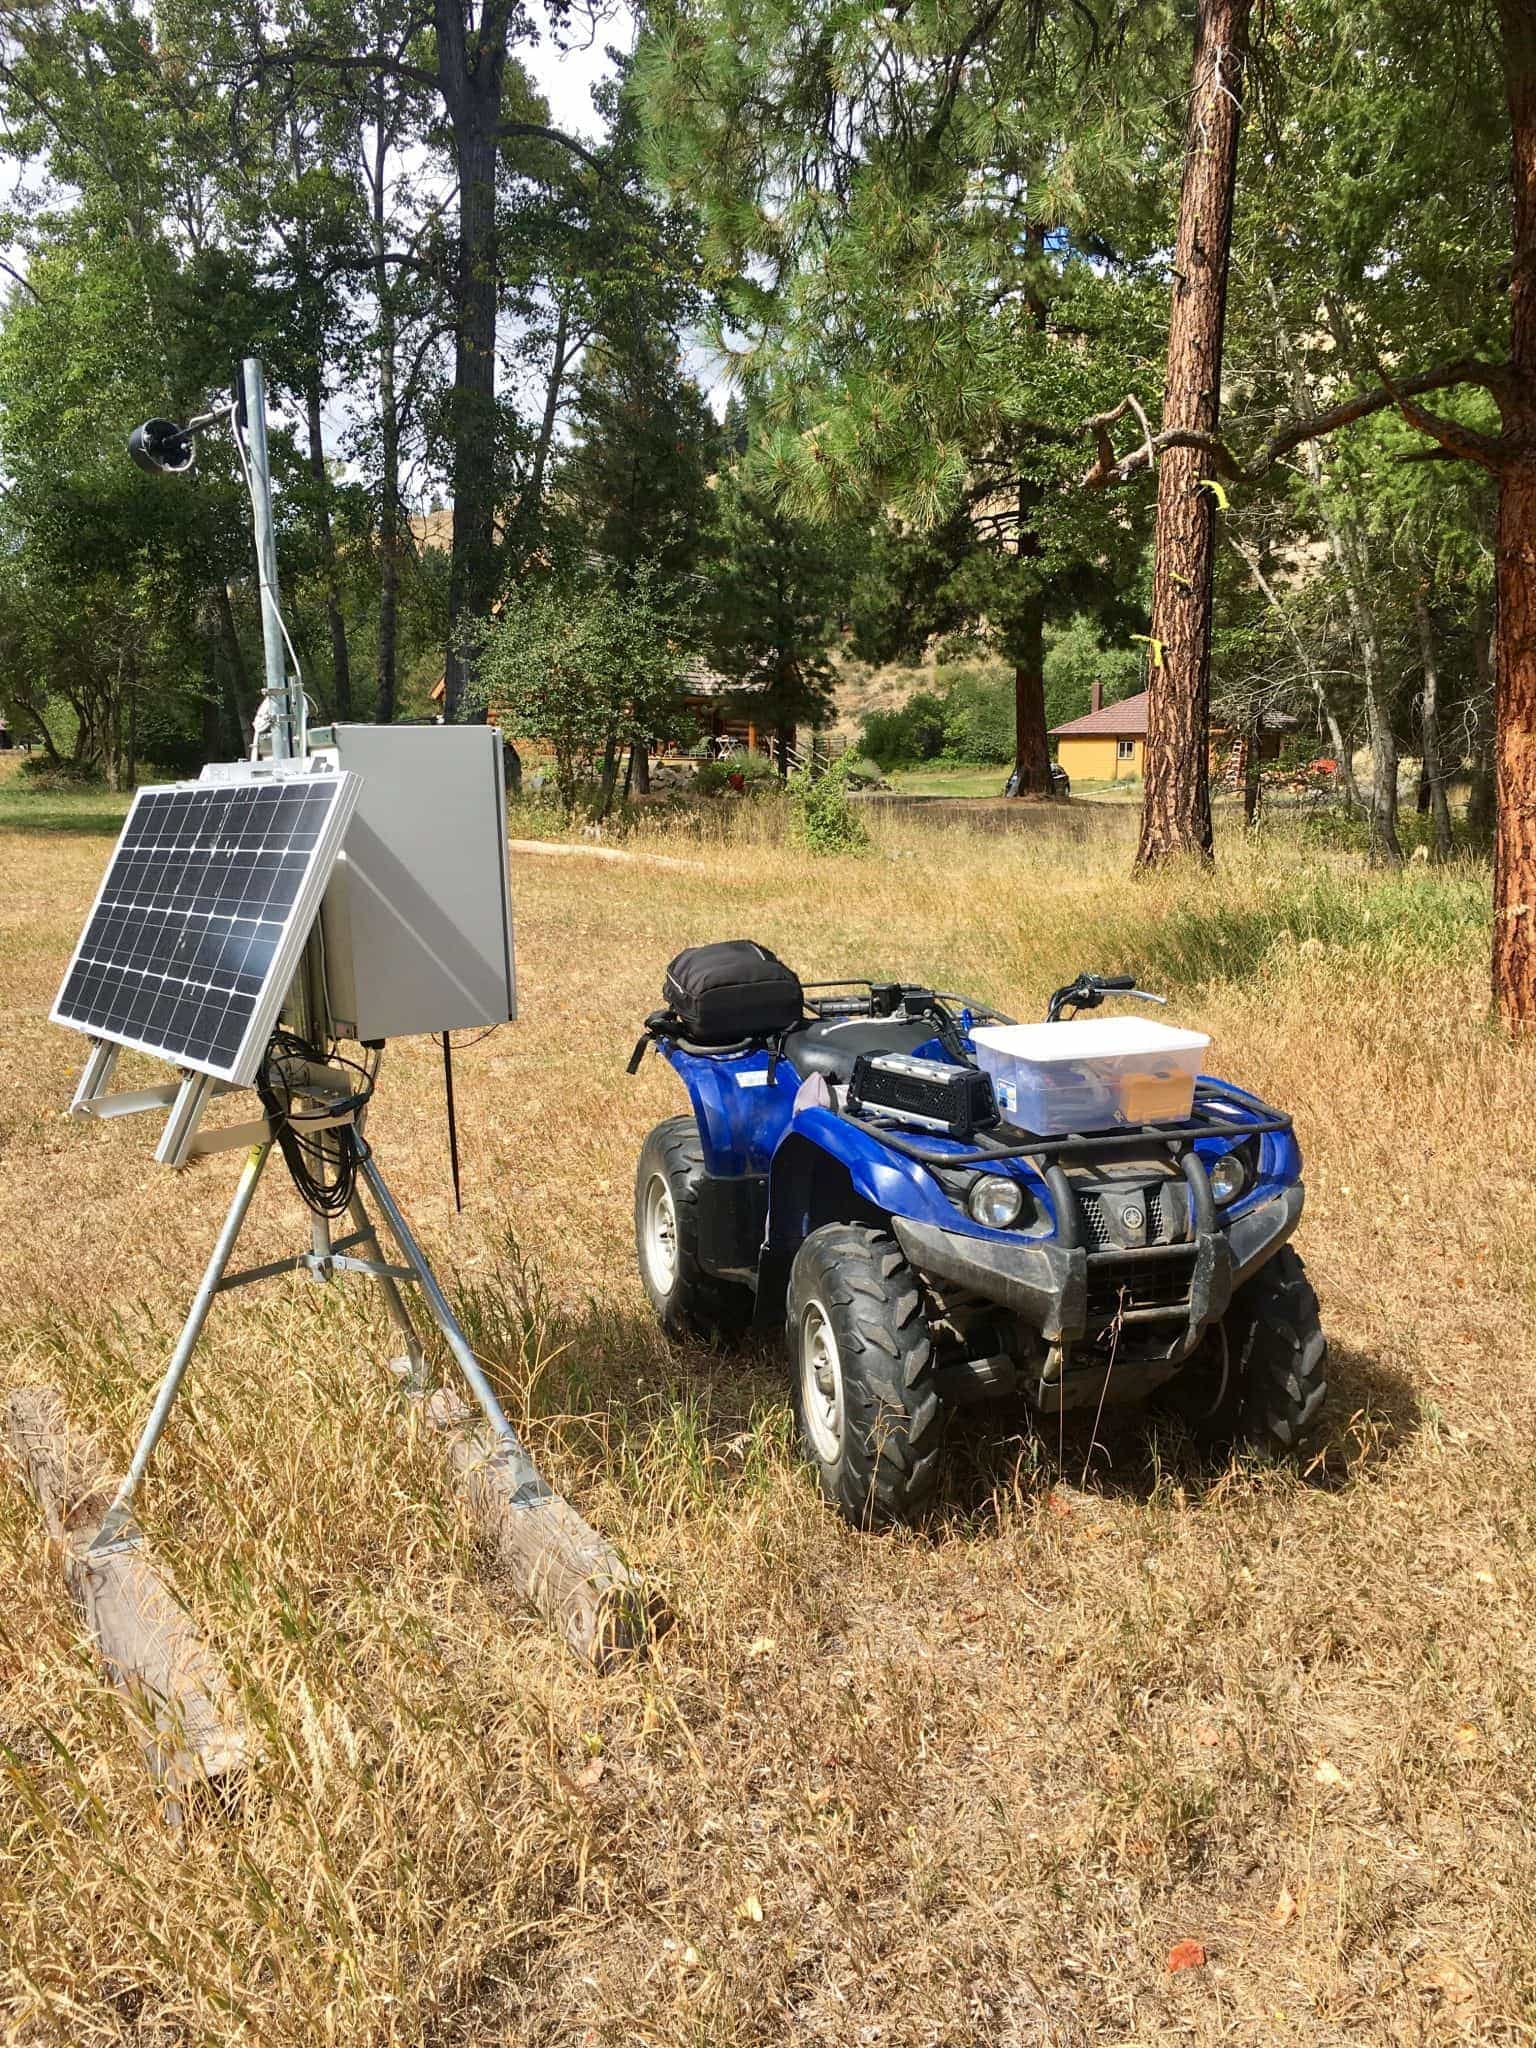 My work bench at the solar panel location